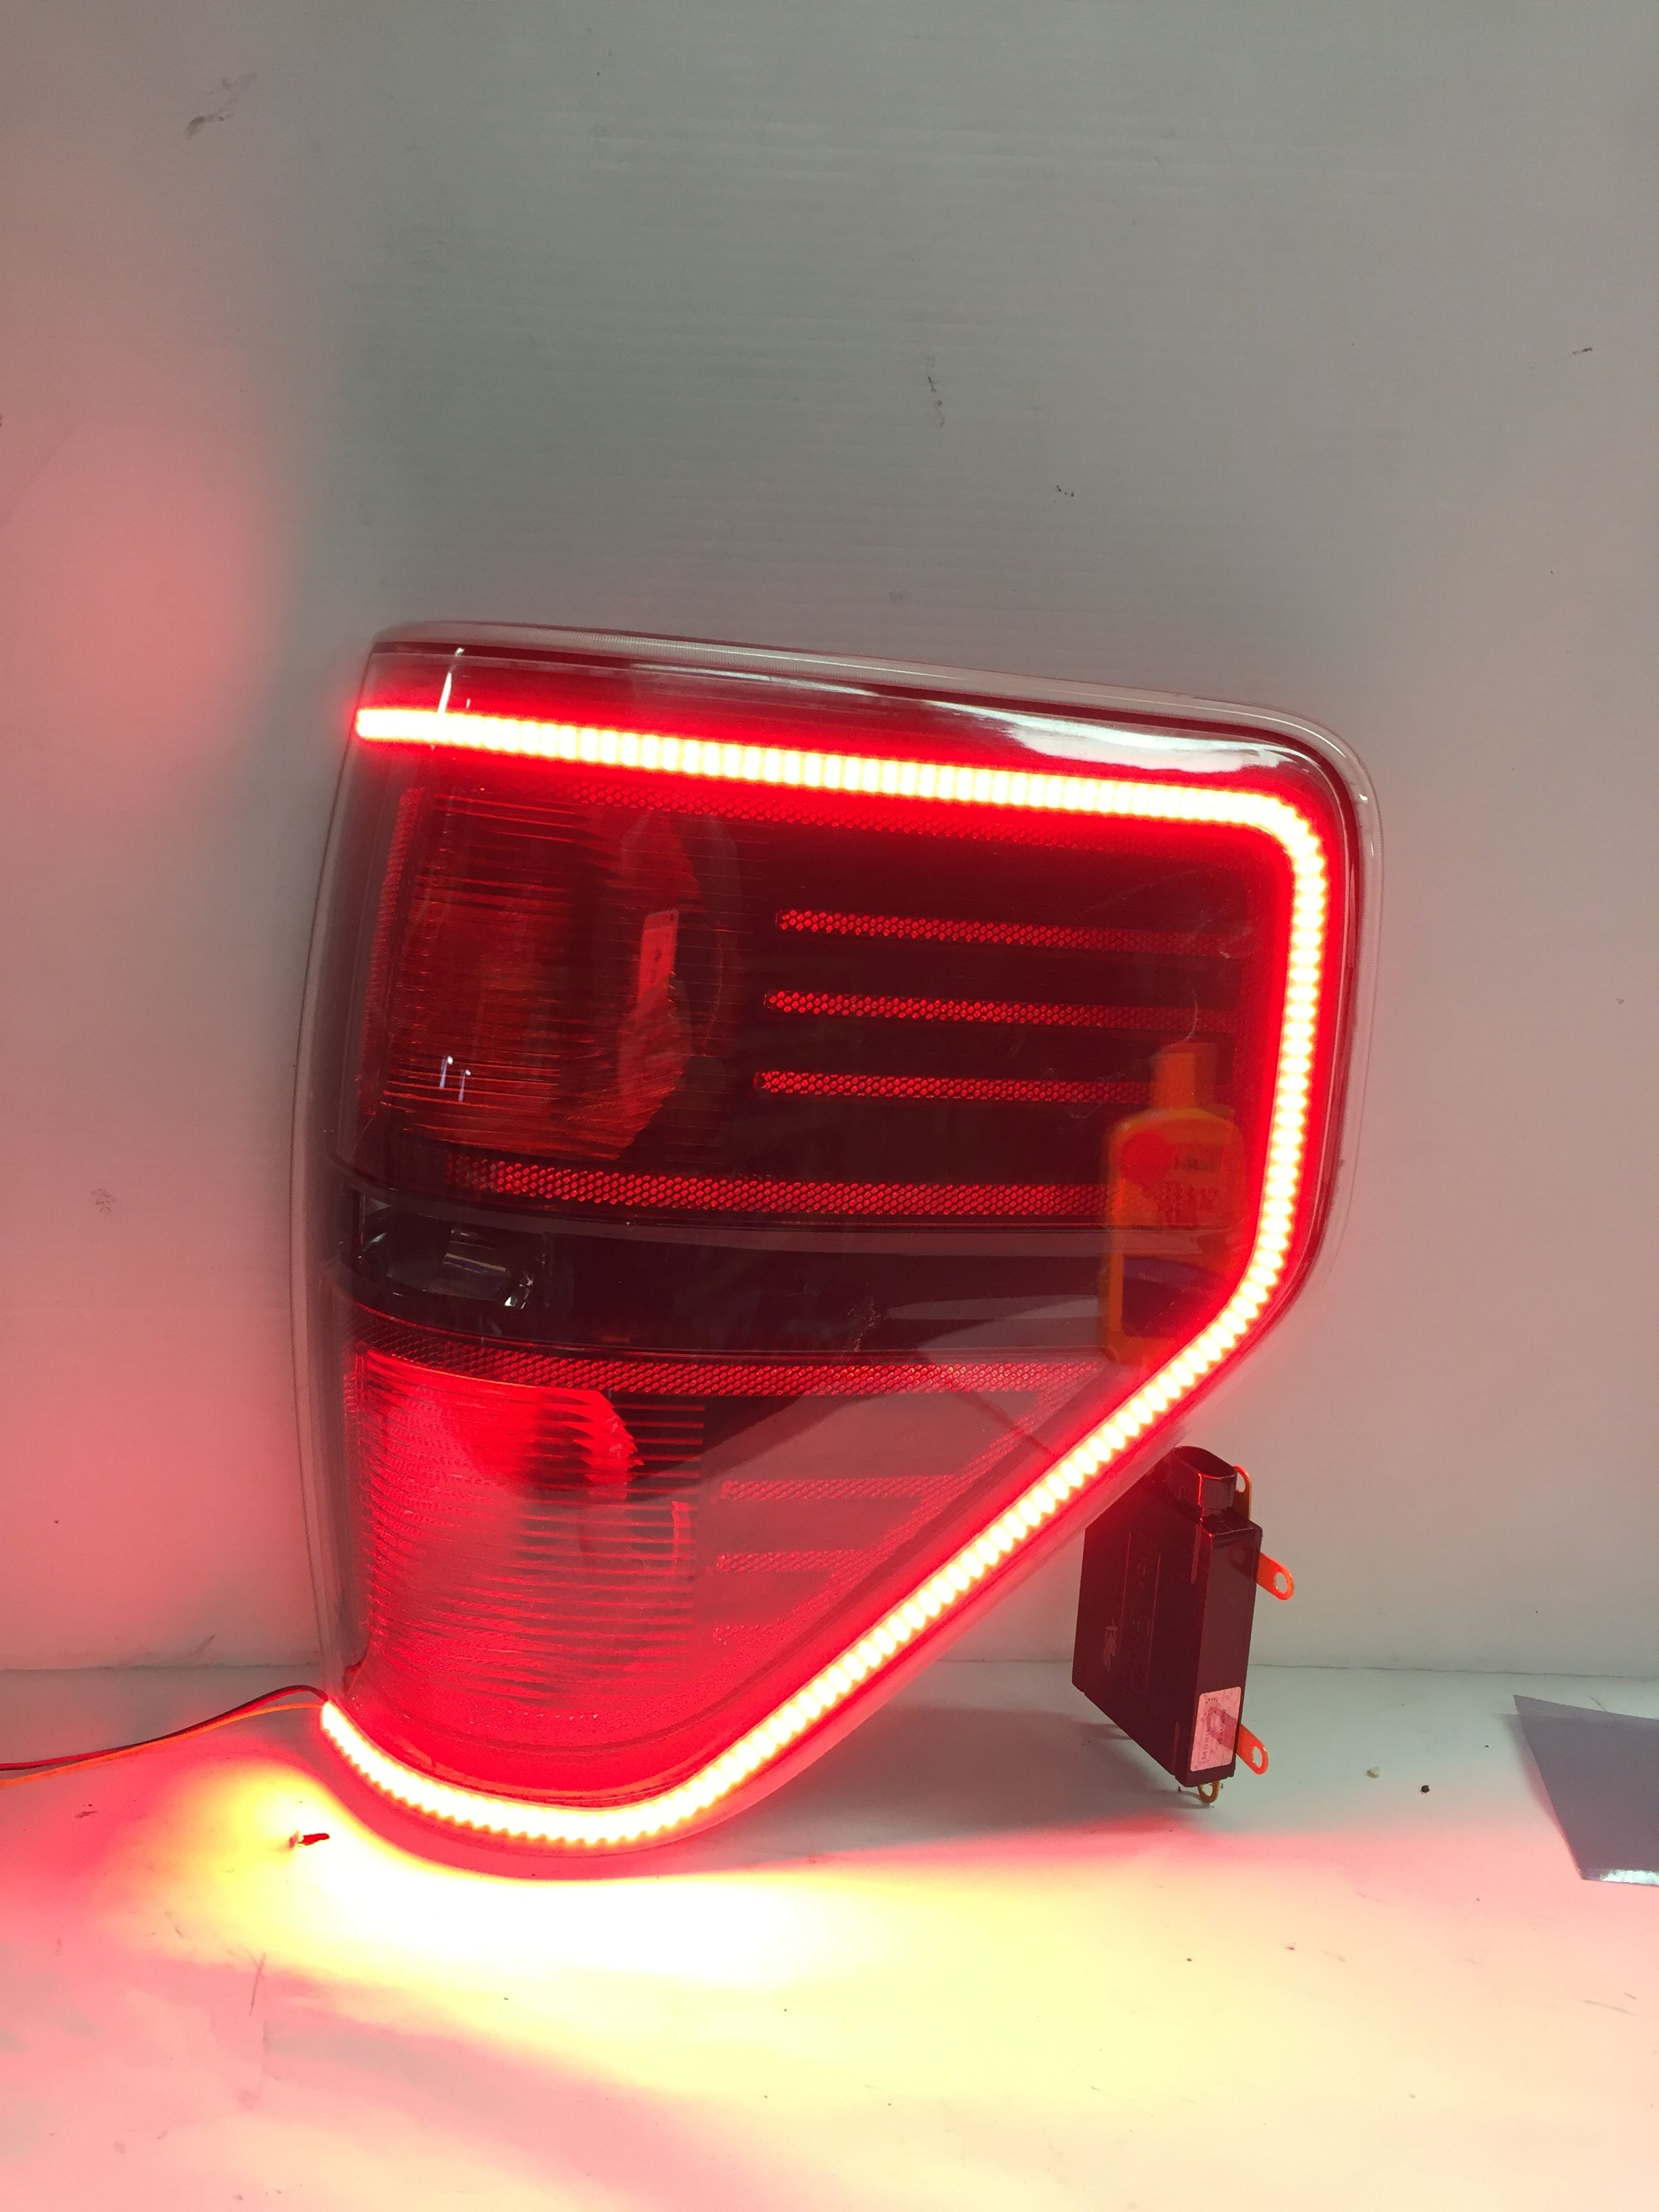 hight resolution of our custom oem ford f150 and raptor tail lights are here these modified oem tail lights feature the 2015 style wrap around led running light that functions